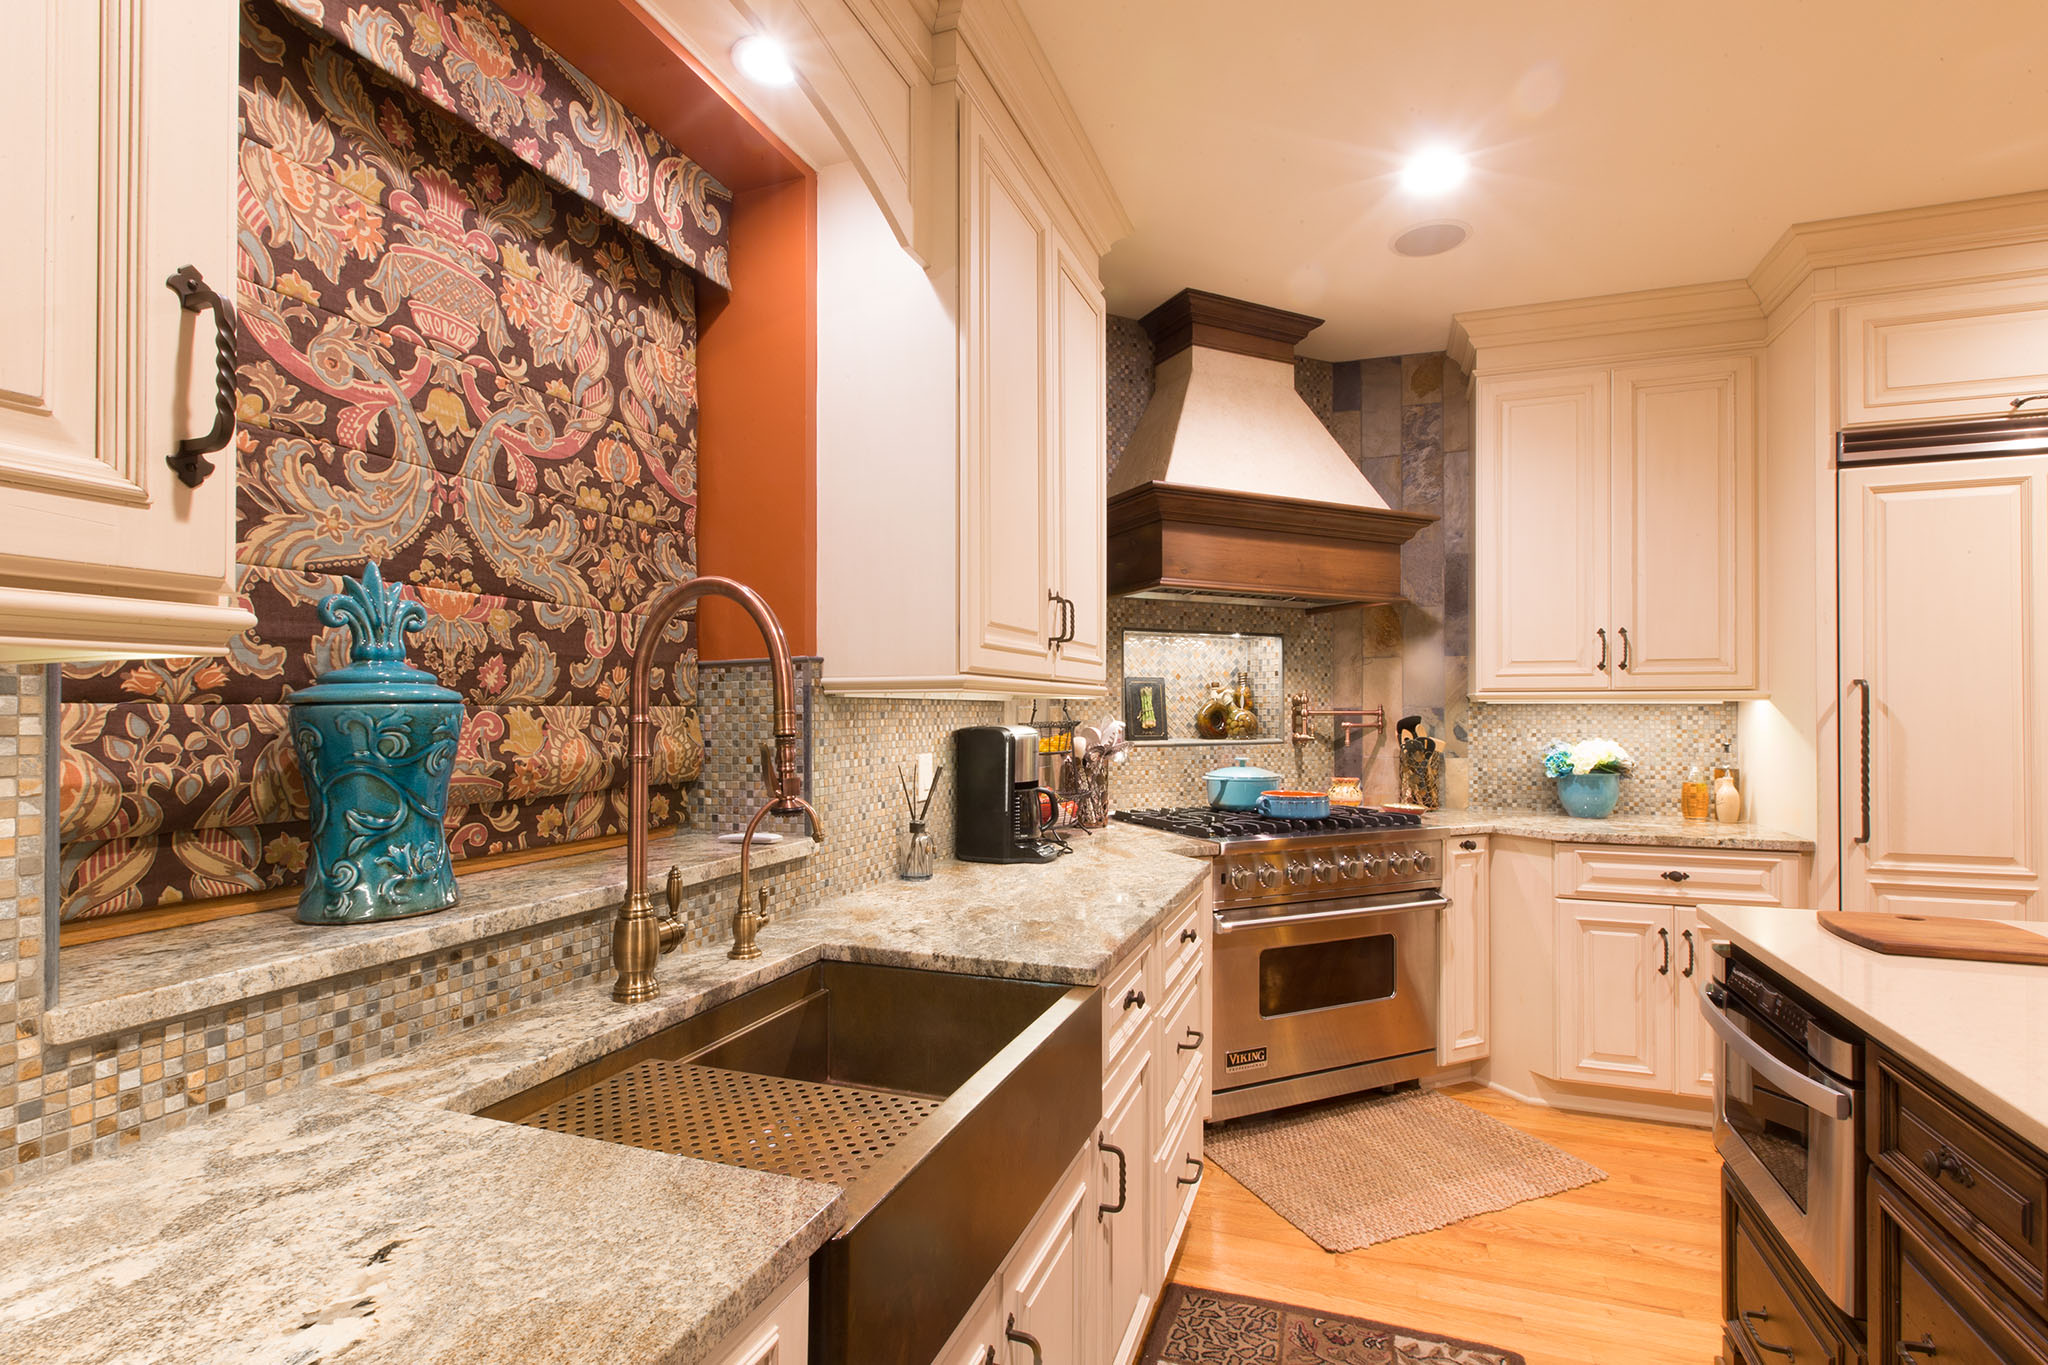 Multi color kitchen cabinets with matching kitchen hood